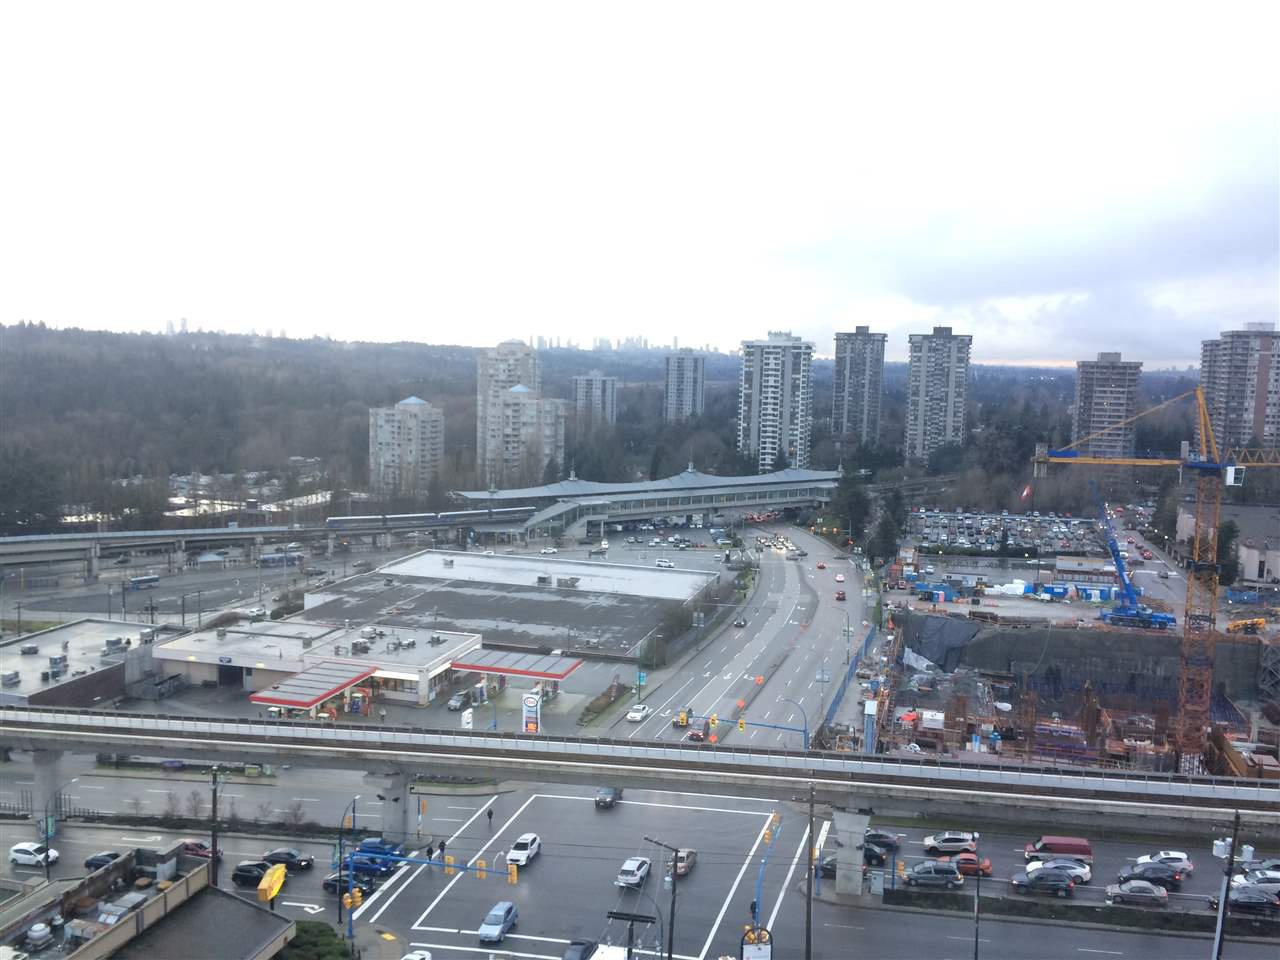 """Main Photo: 1402 518 WHITING Way in Coquitlam: Coquitlam West Condo for sale in """"UNION"""" : MLS®# R2430883"""